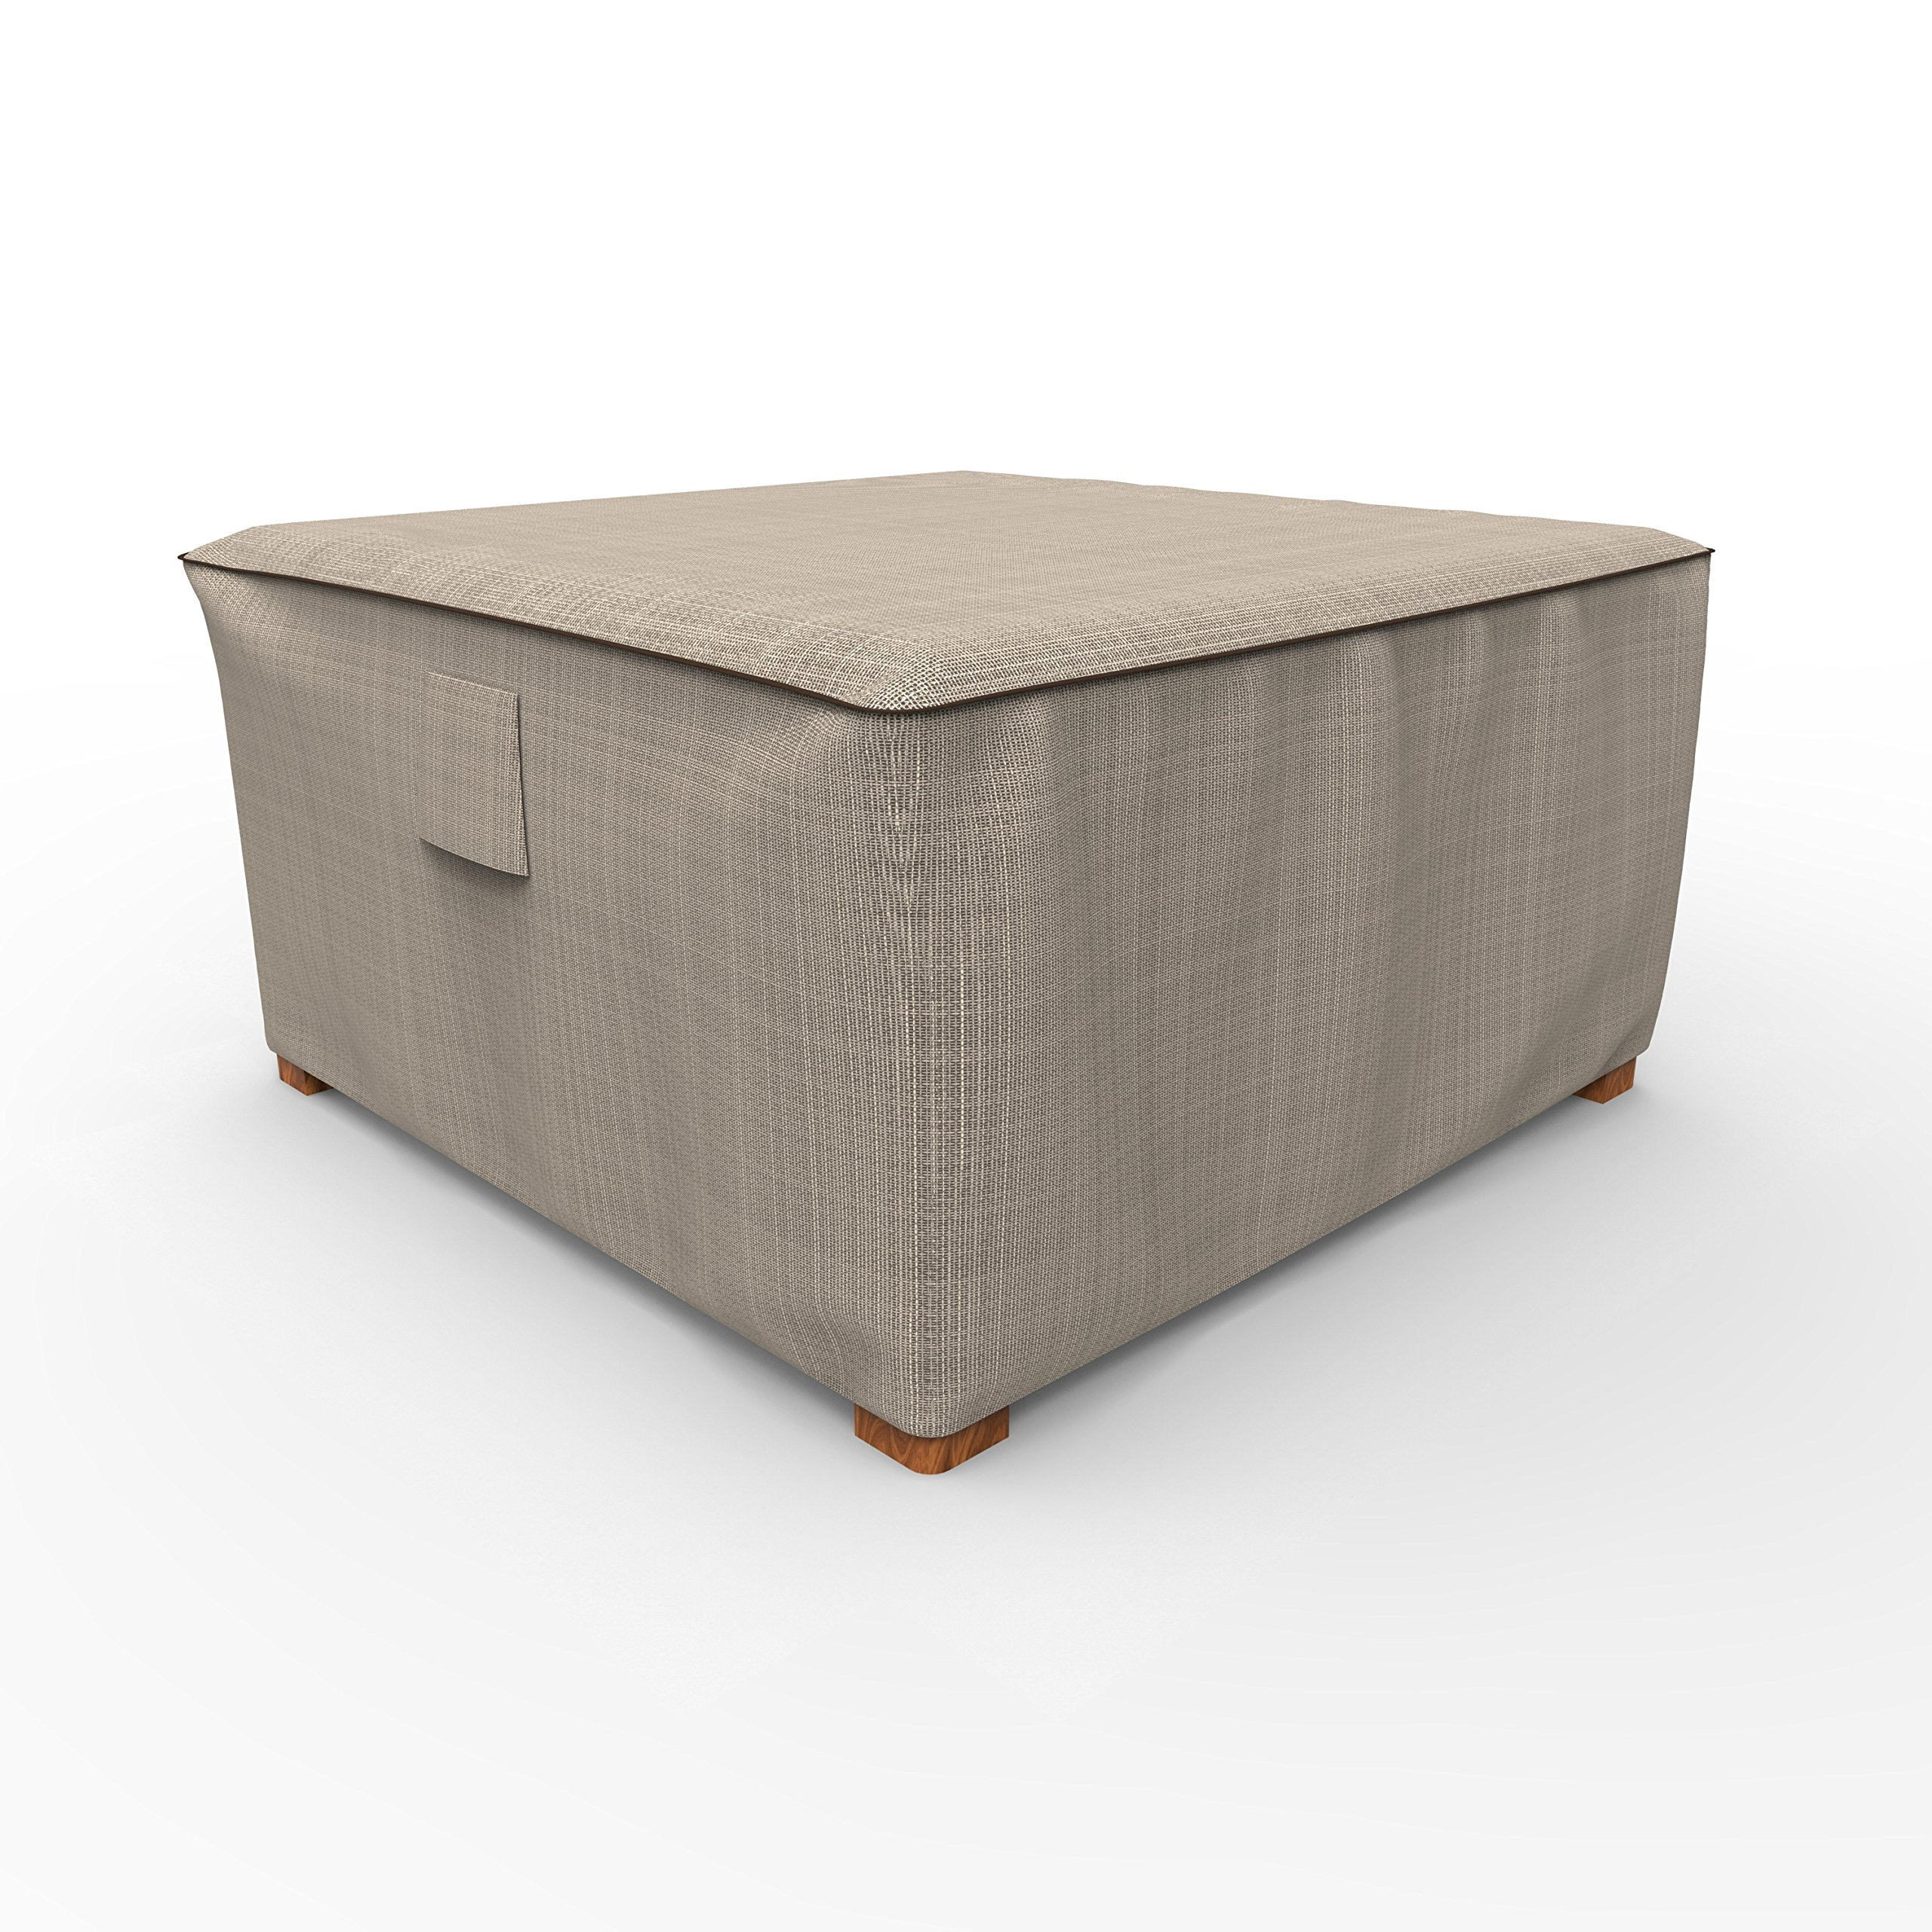 EmpirePatio P4A02PM1 Tan Tweed Extra Large Ottoman Cover